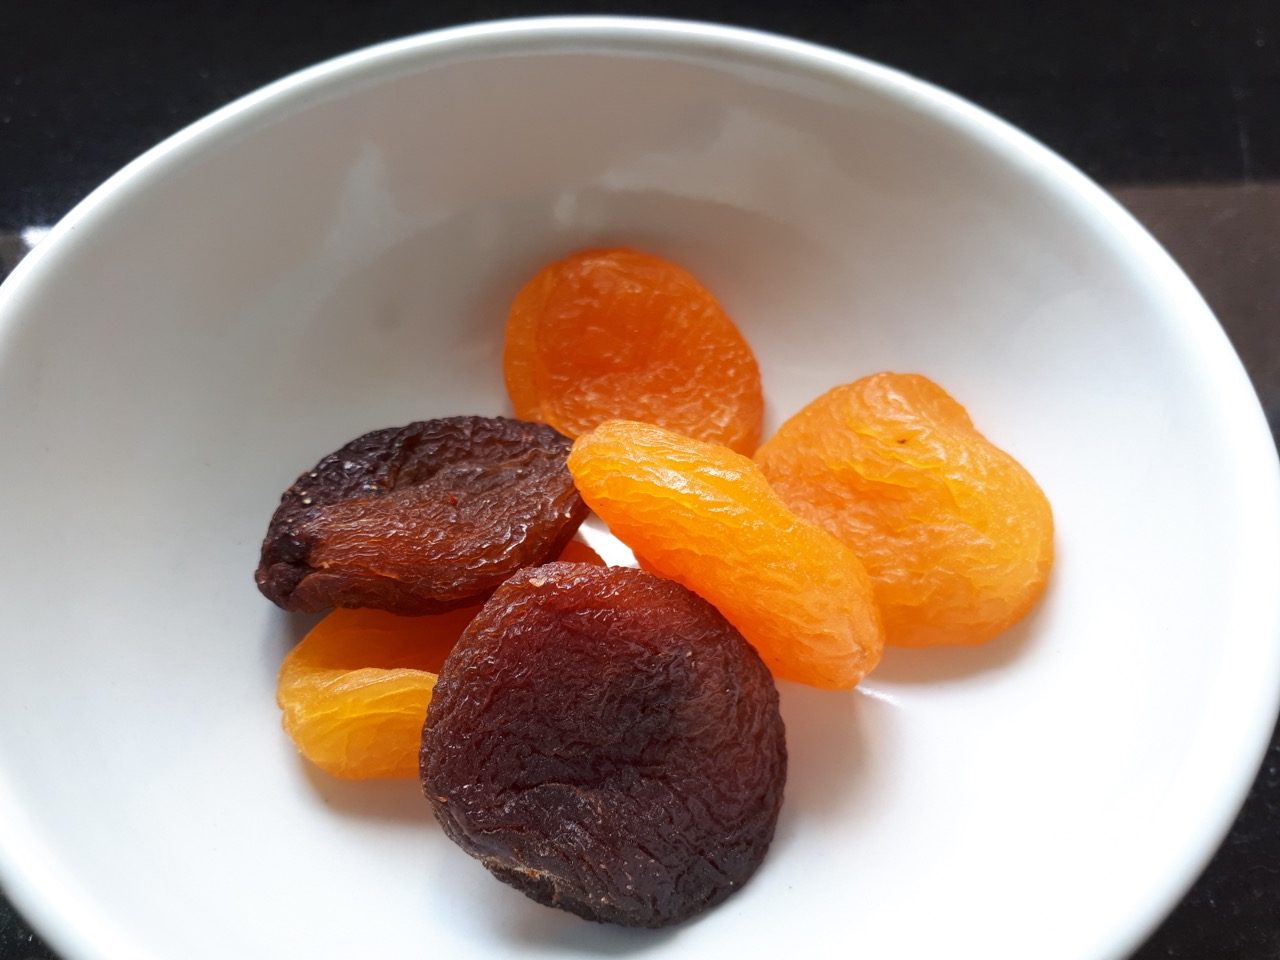 Naturally dried apricots versus apricots treated with sulphites to keep color orange